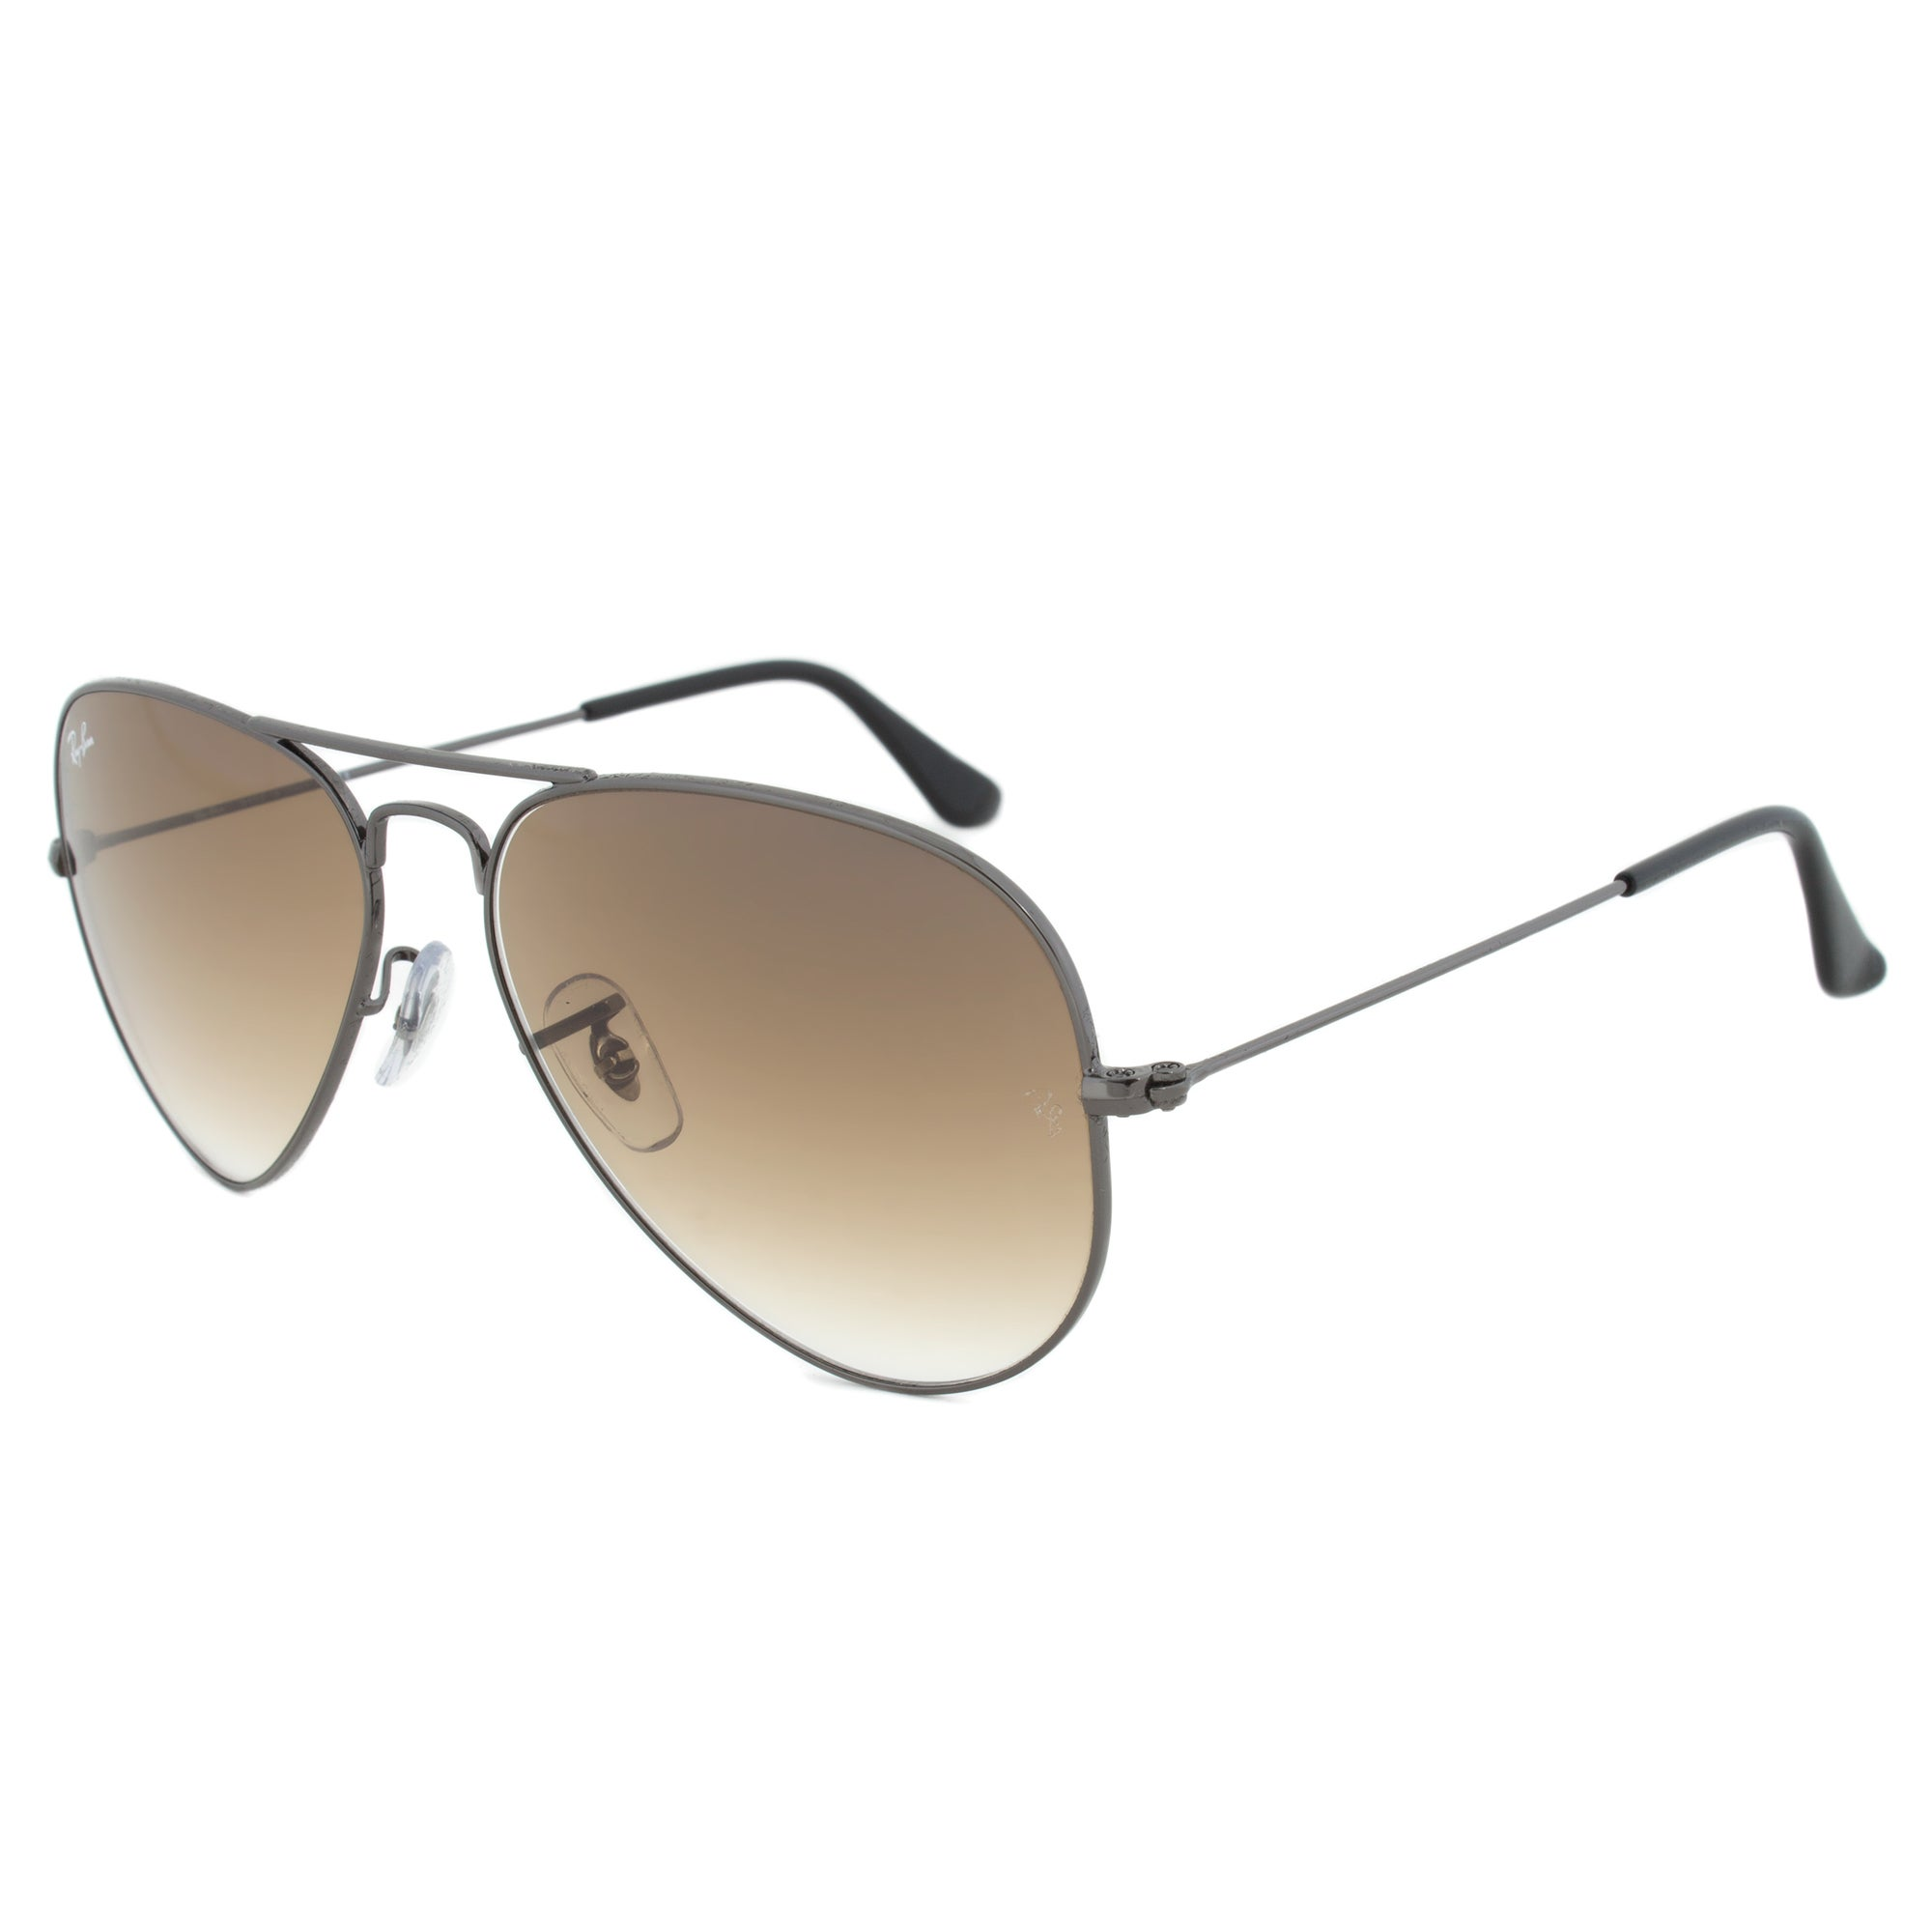 bca939b72c Shop Ray-Ban RB3025 004/51 Size 58 Brown Gradient Lens Gunmetal Frame  Aviator Sunglasses - Free Shipping Today - Overstock - 10482707